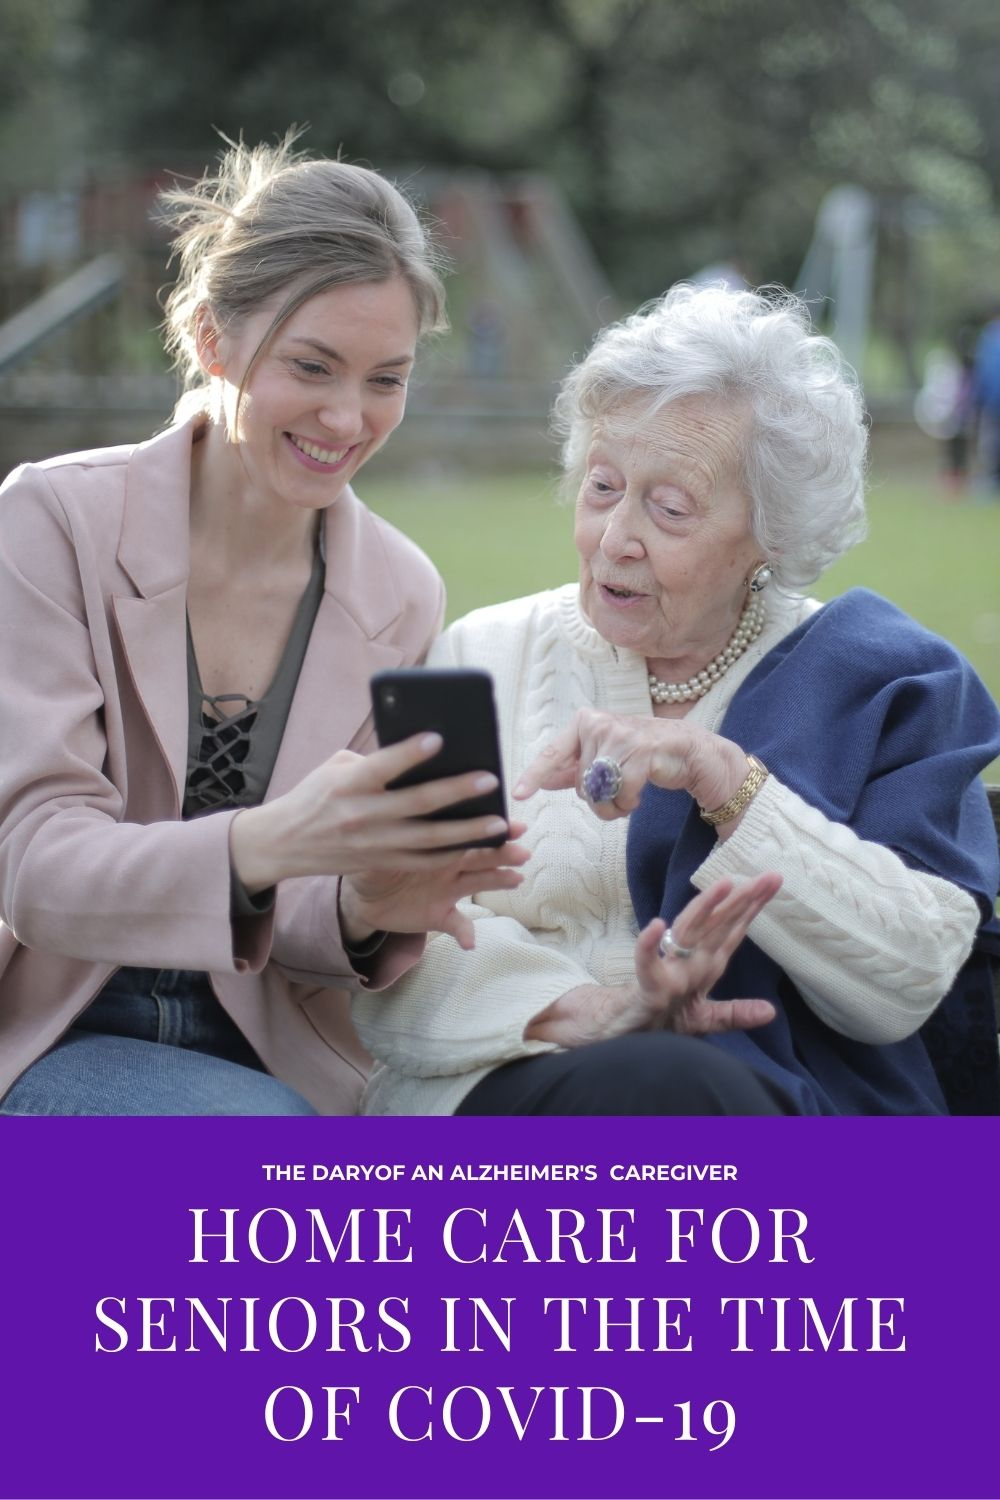 younger woman showing something to older woman on her phone